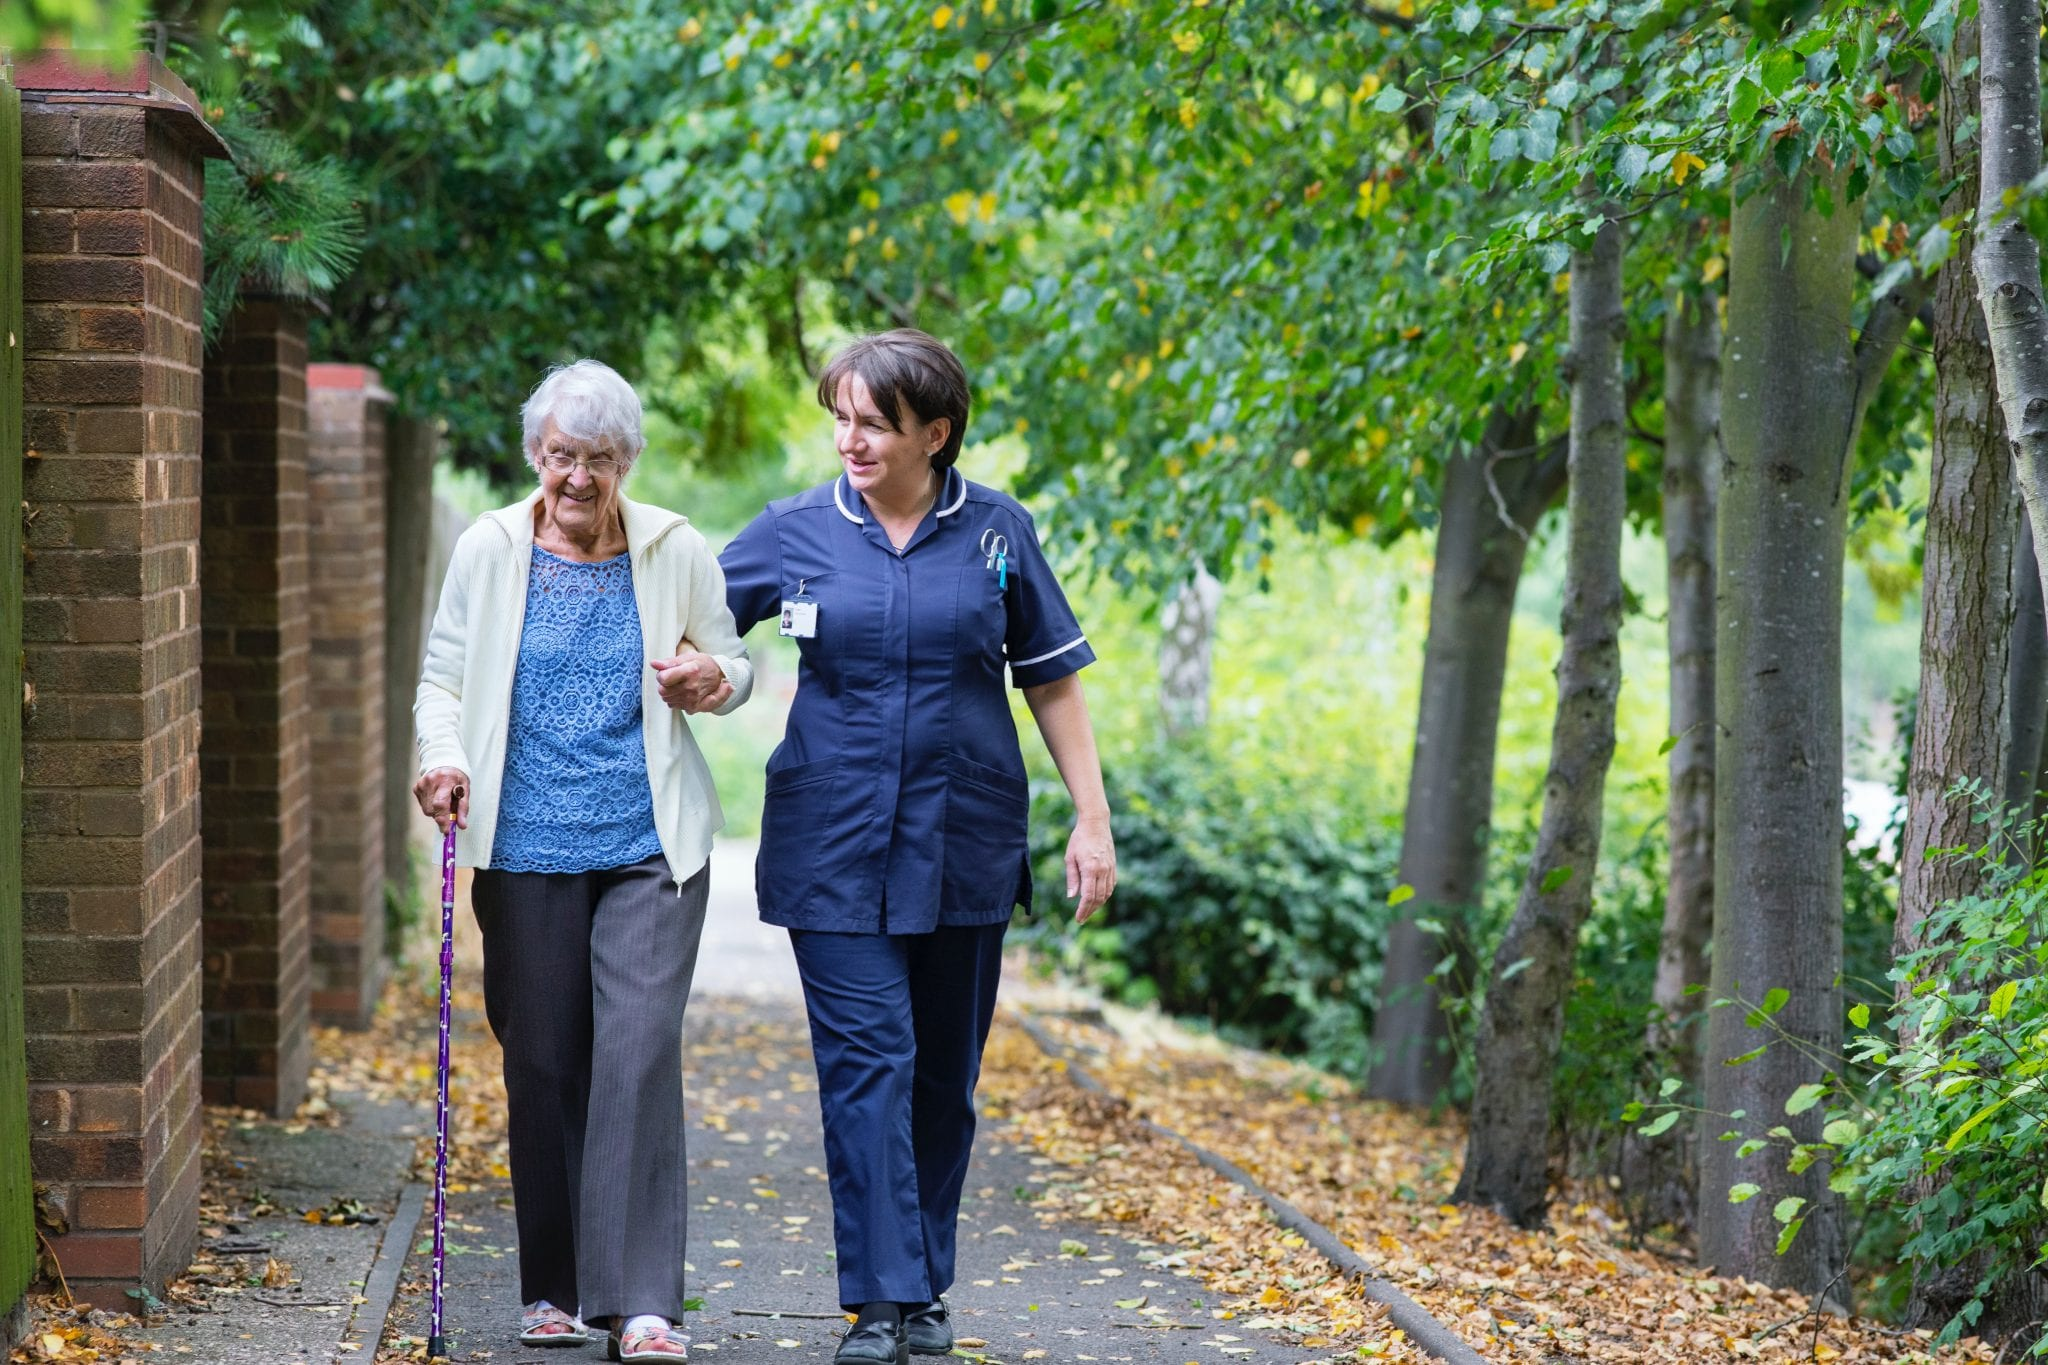 man in blue polo shirt and woman in white dress walking on pathway